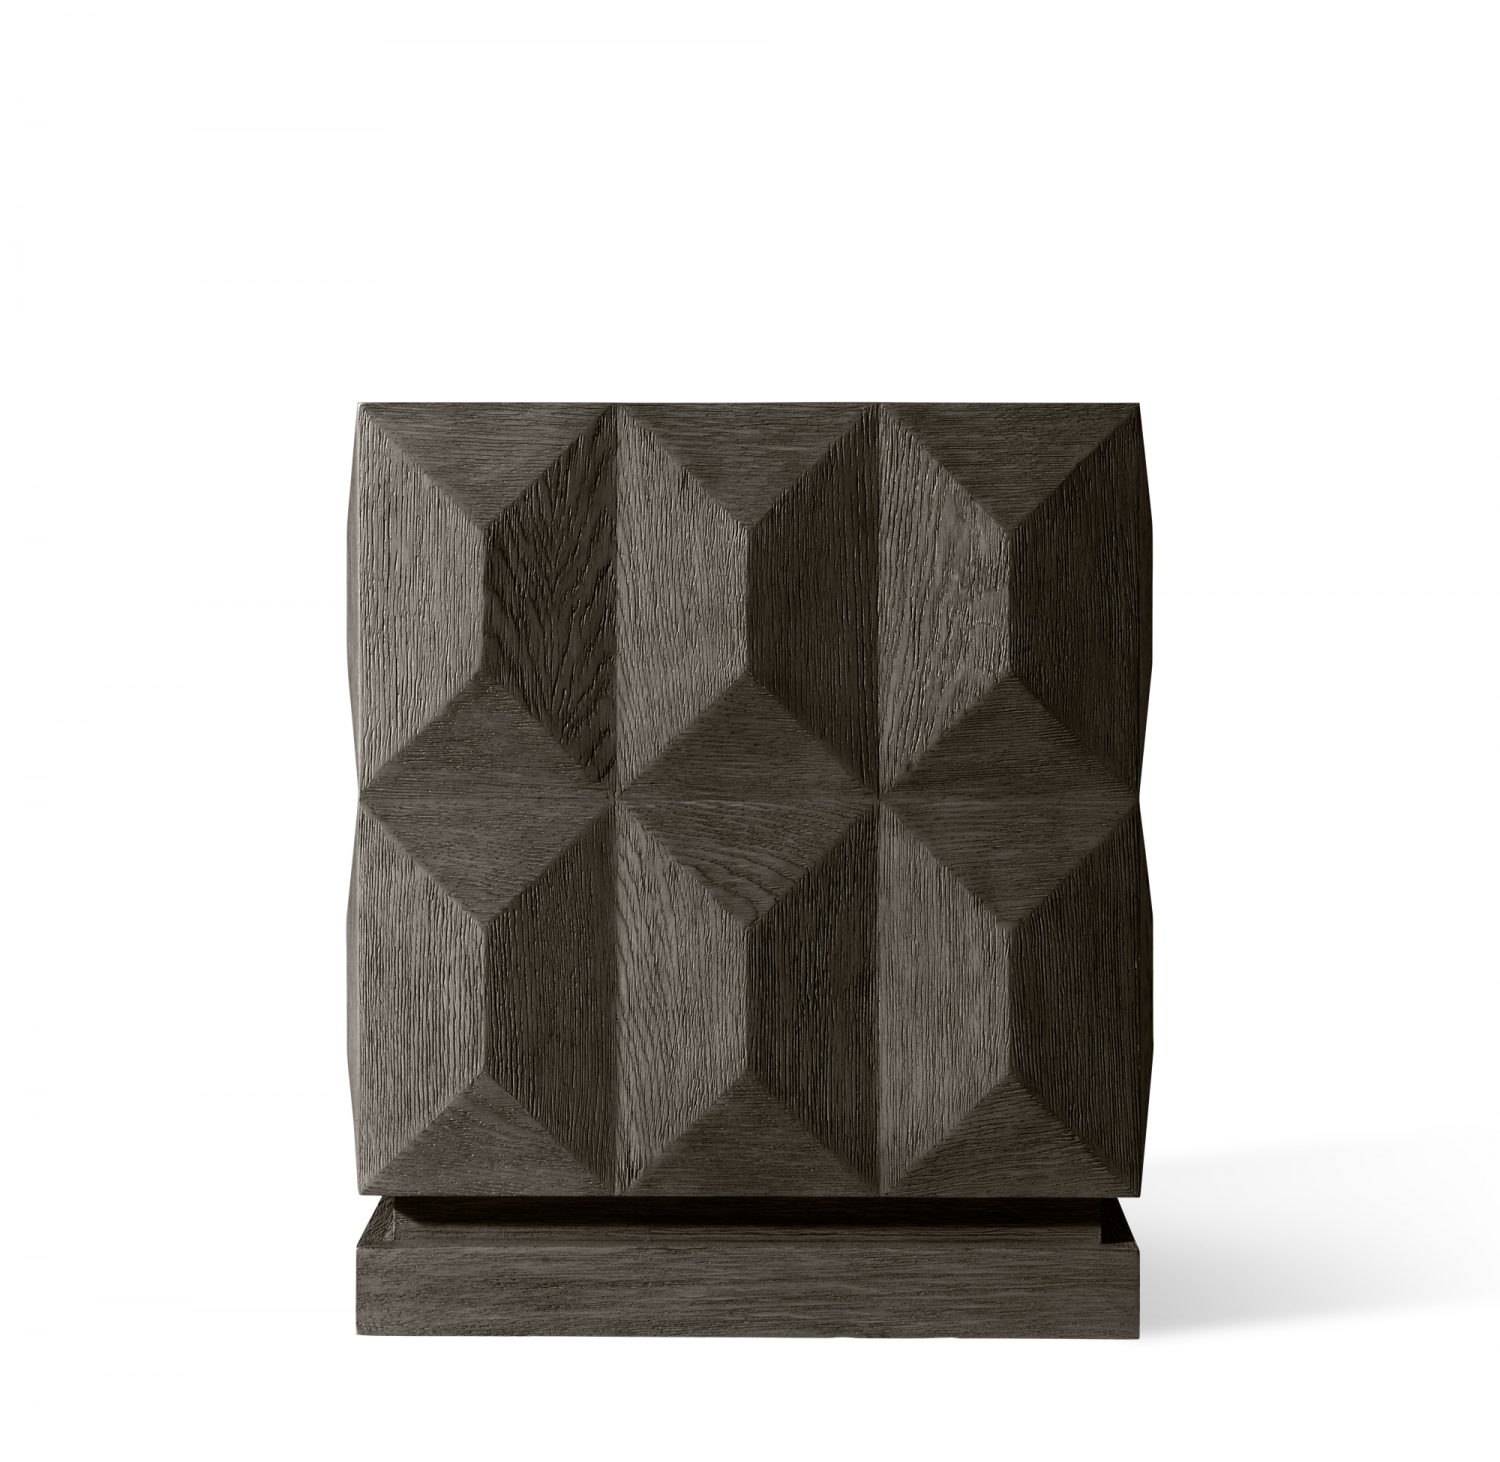 Fall 2016 Restoration Hardware Interiors Collection : GEOMETRIC FACETED SQUARE SIDE TABLE brown from www.arizonafoothillsmagazine.com size 2000 x 1949 jpeg 970kB